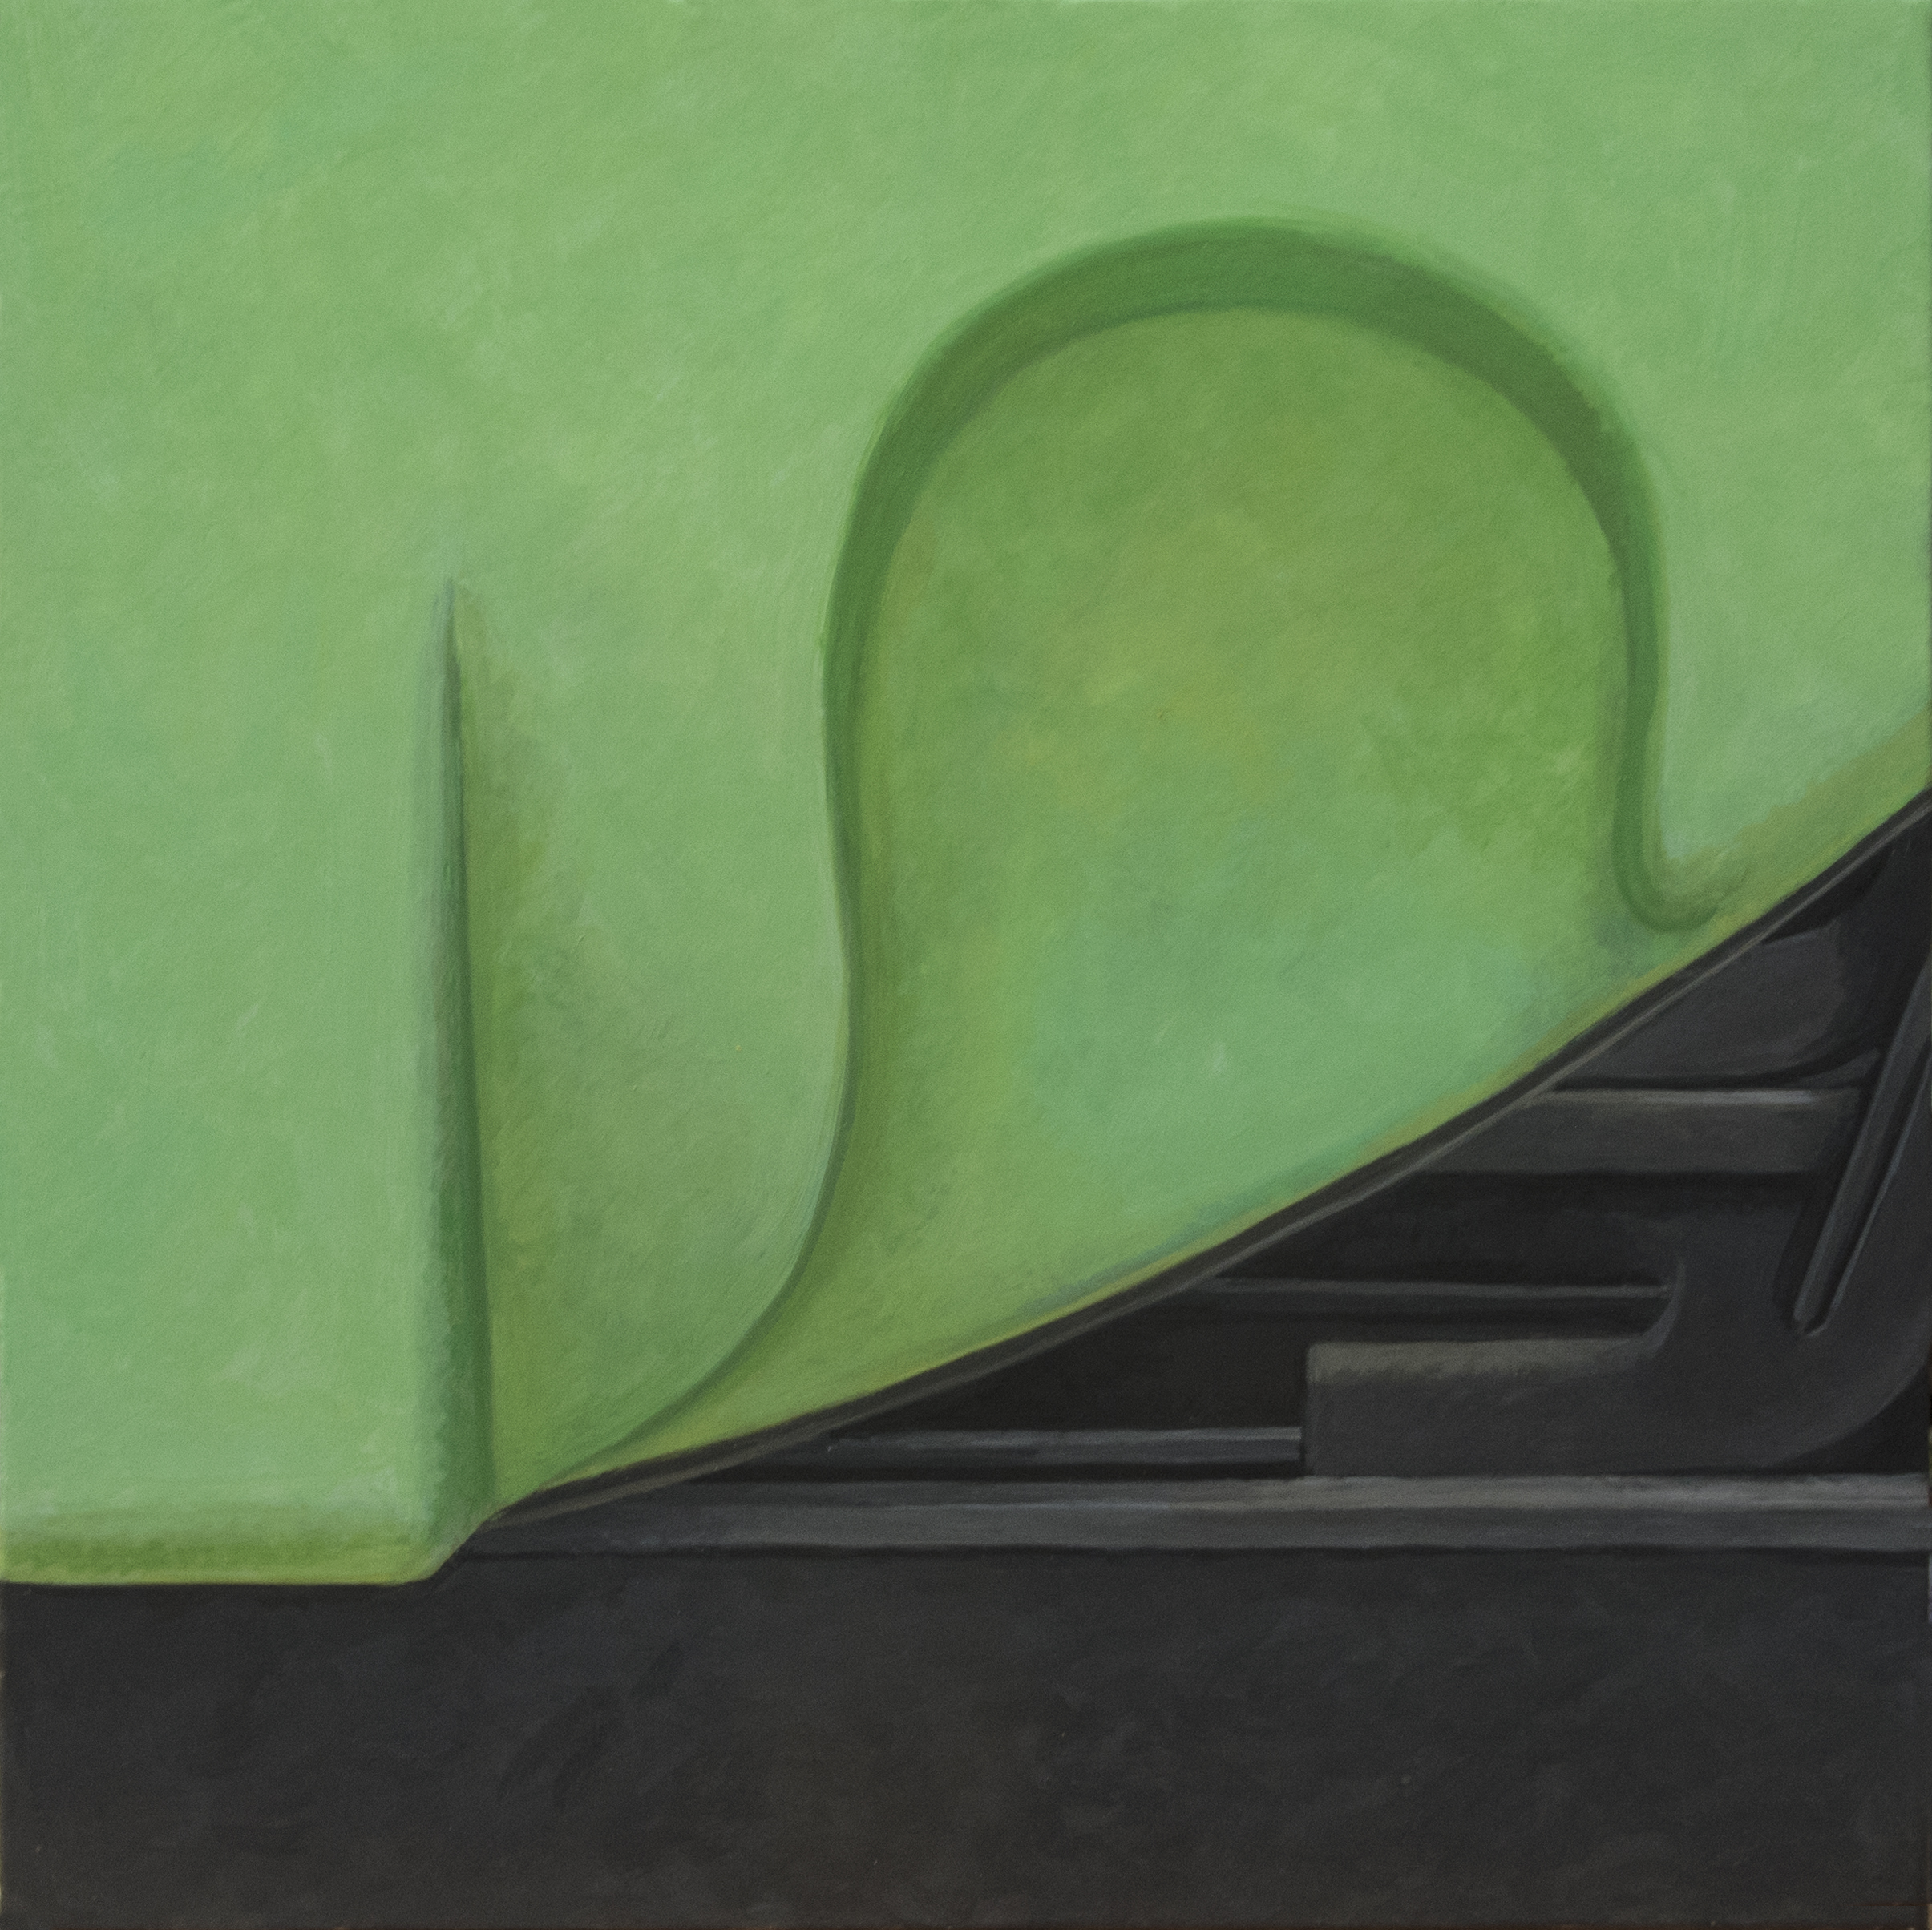 Altoon Sultan: Green Curve, 2014, egg tempera on parchent, 7 1/2 x 7 1/2